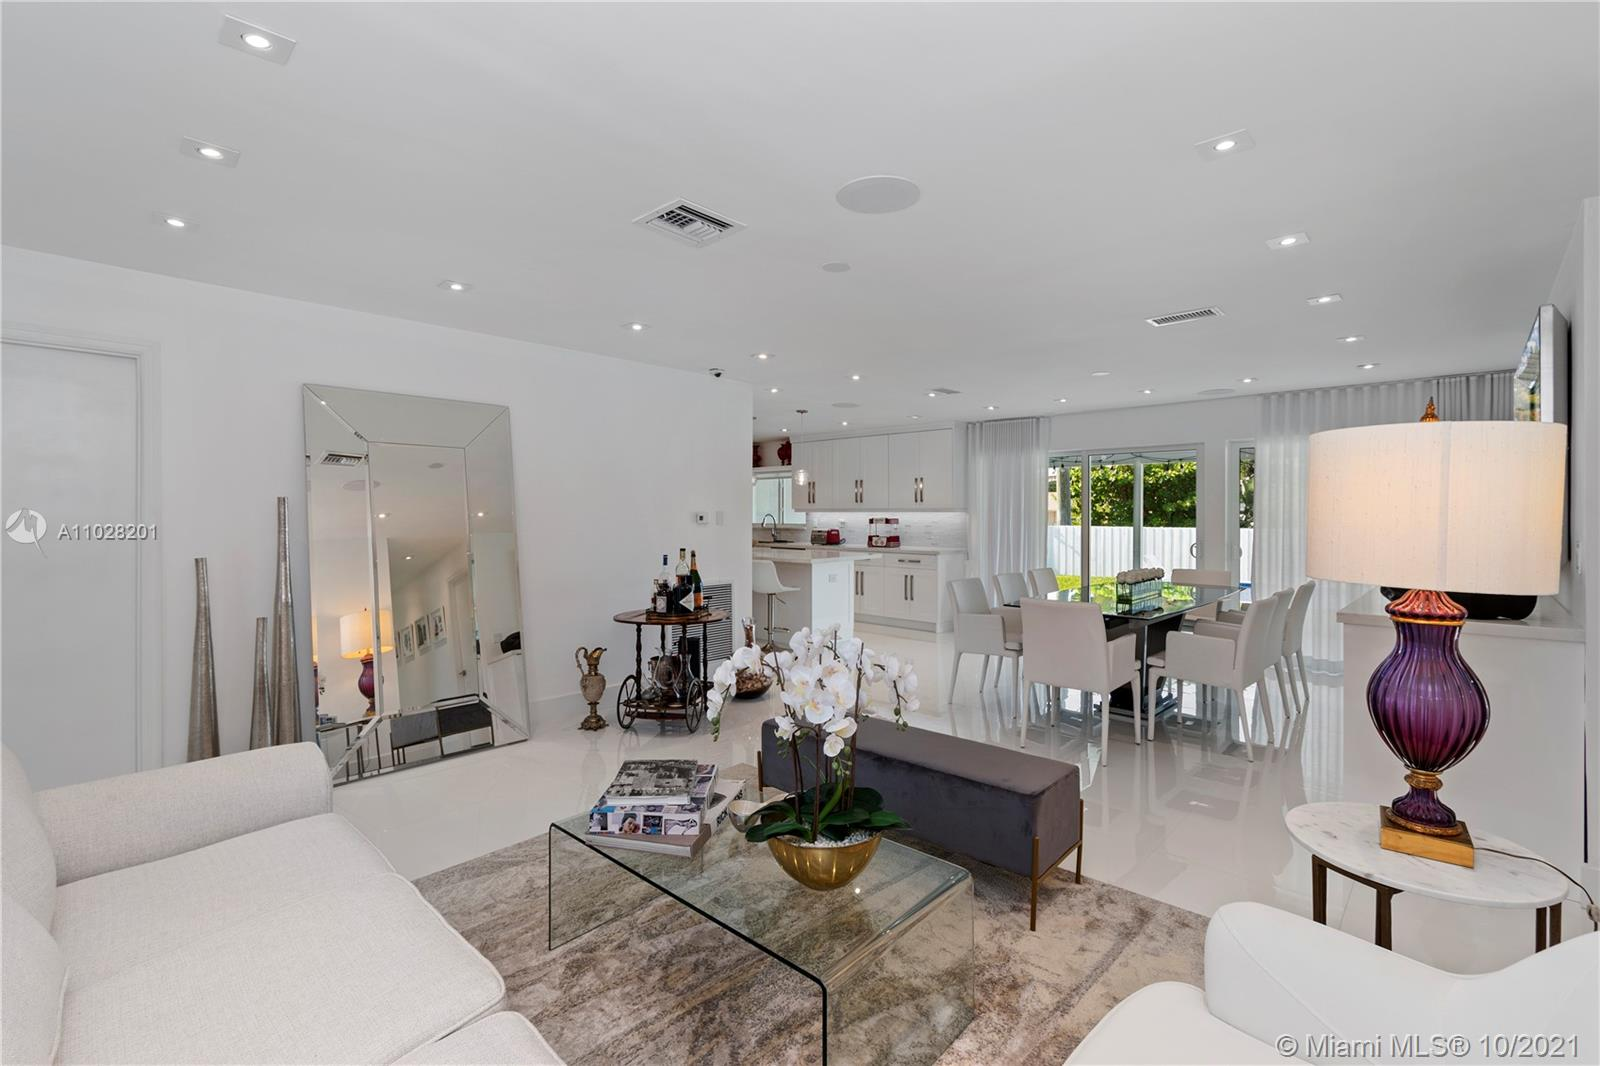 Open floor plan with lots of natural light, all flushed LED lighting and sound system throughout the entire house